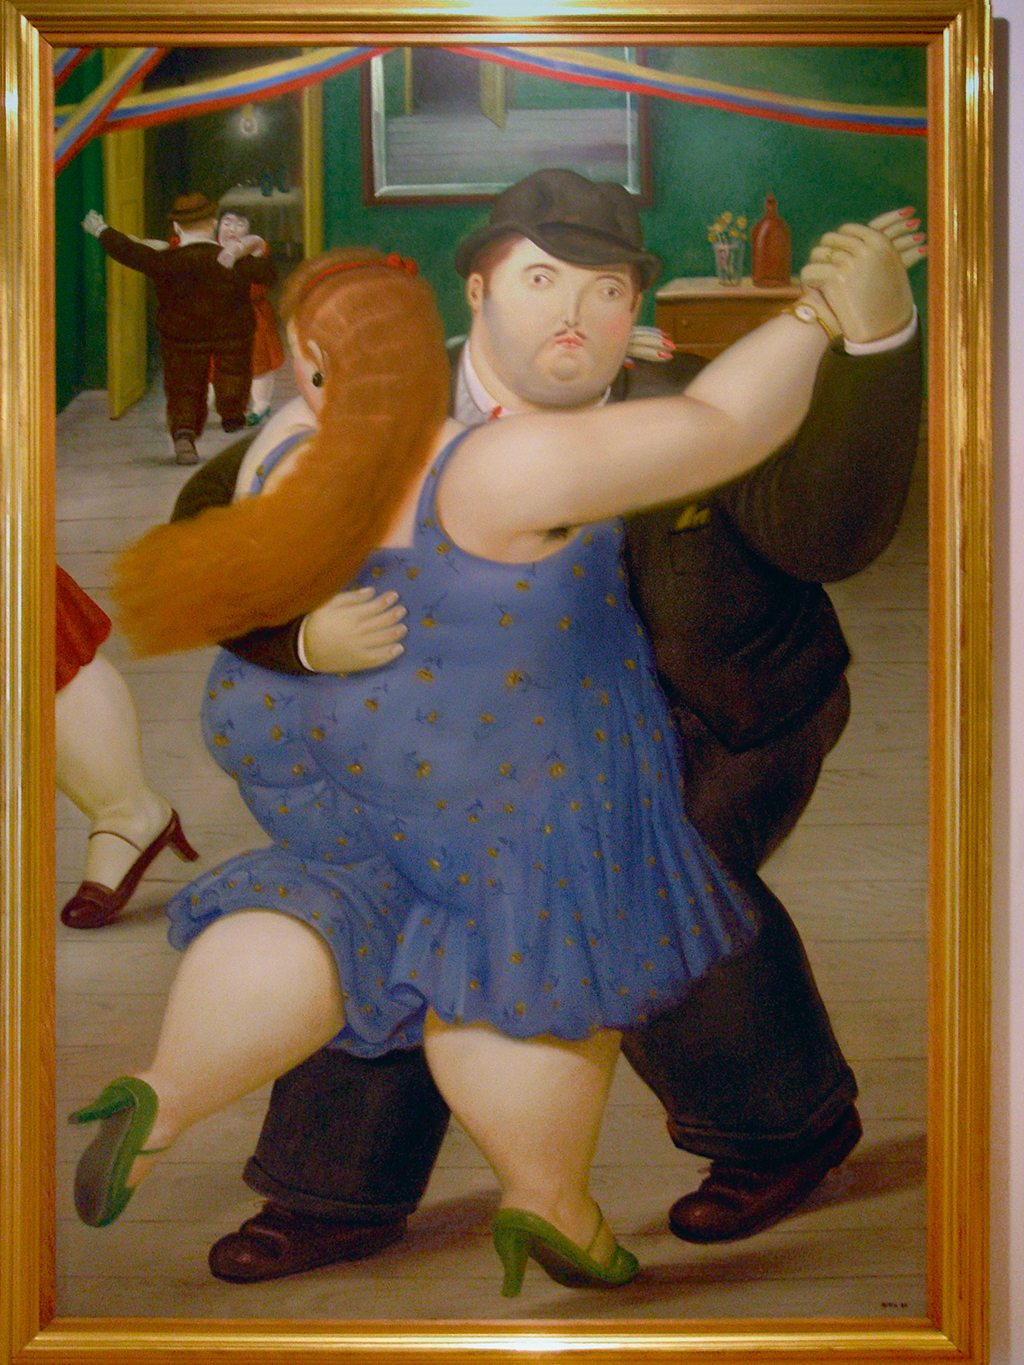 Works by Colombian artist Fernando Botero draw crowds to Bogotá's Botero Museum. Photo: Mark Green/Alamy/Indiapicture